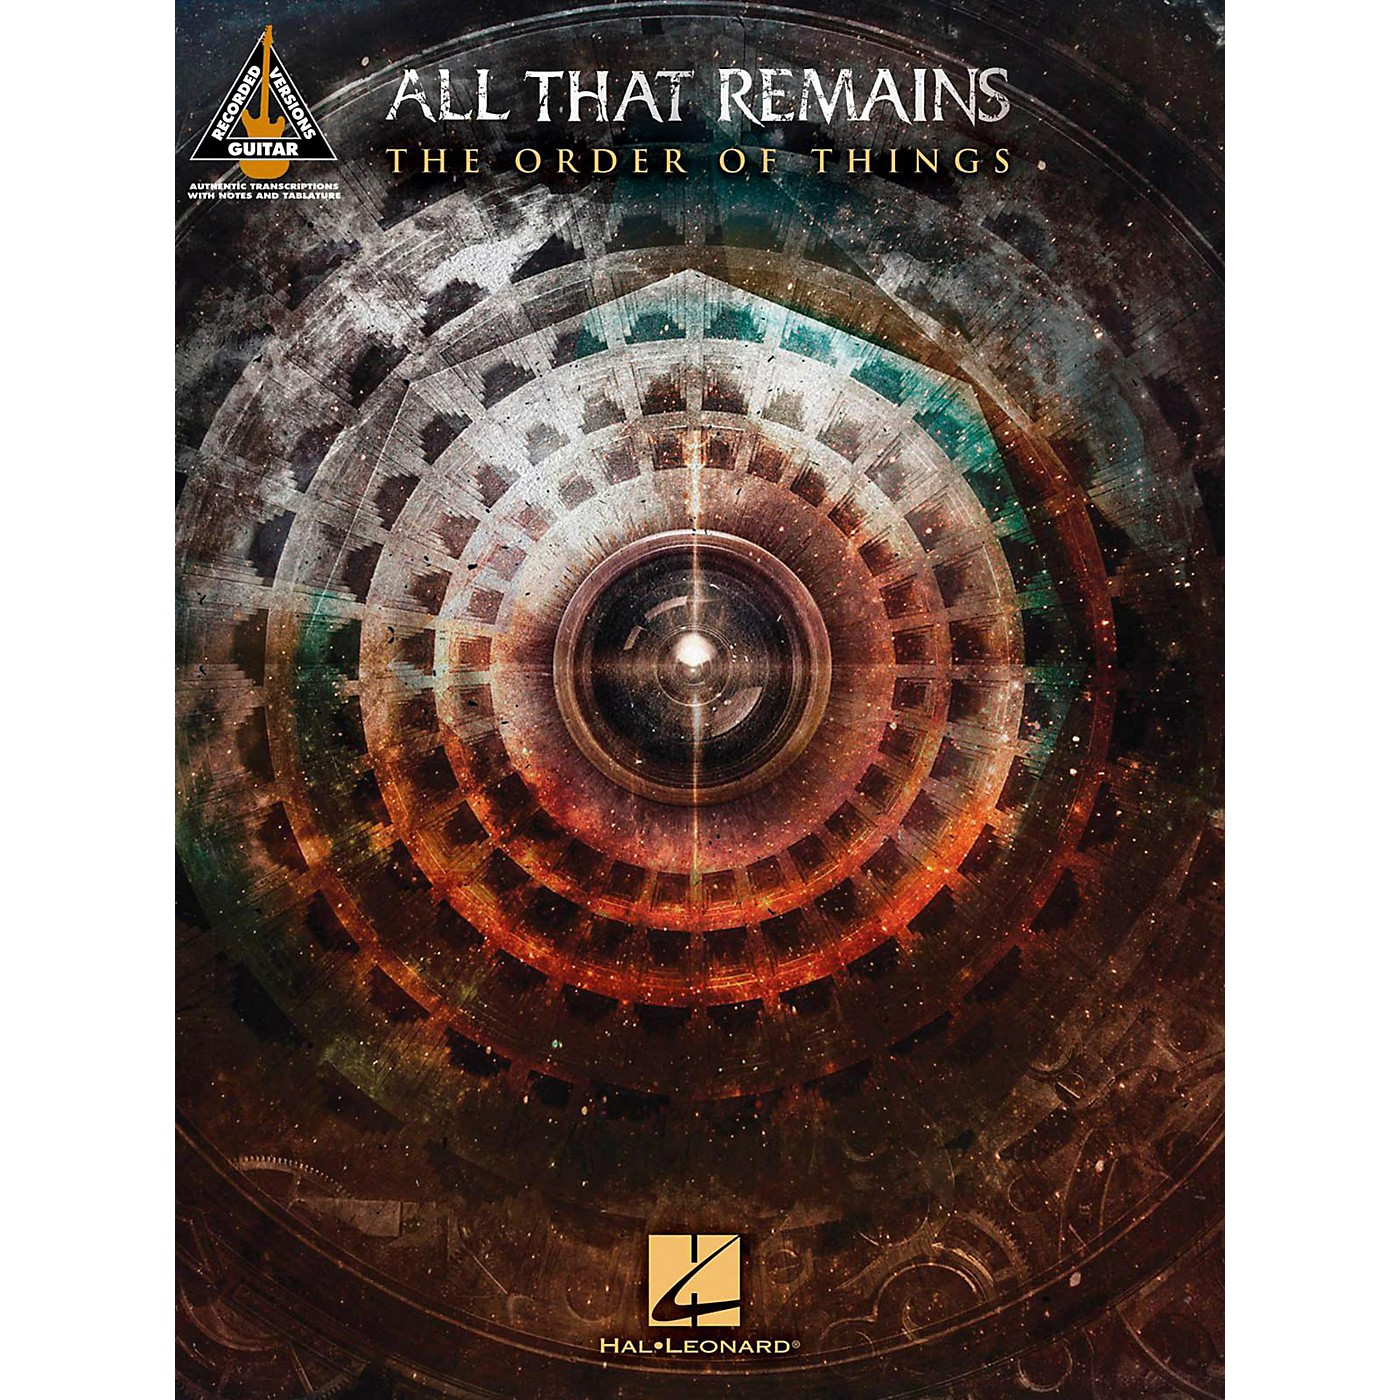 Hal Leonard All That Remains - The Order Of Things Guitar Tab Songbook thumbnail